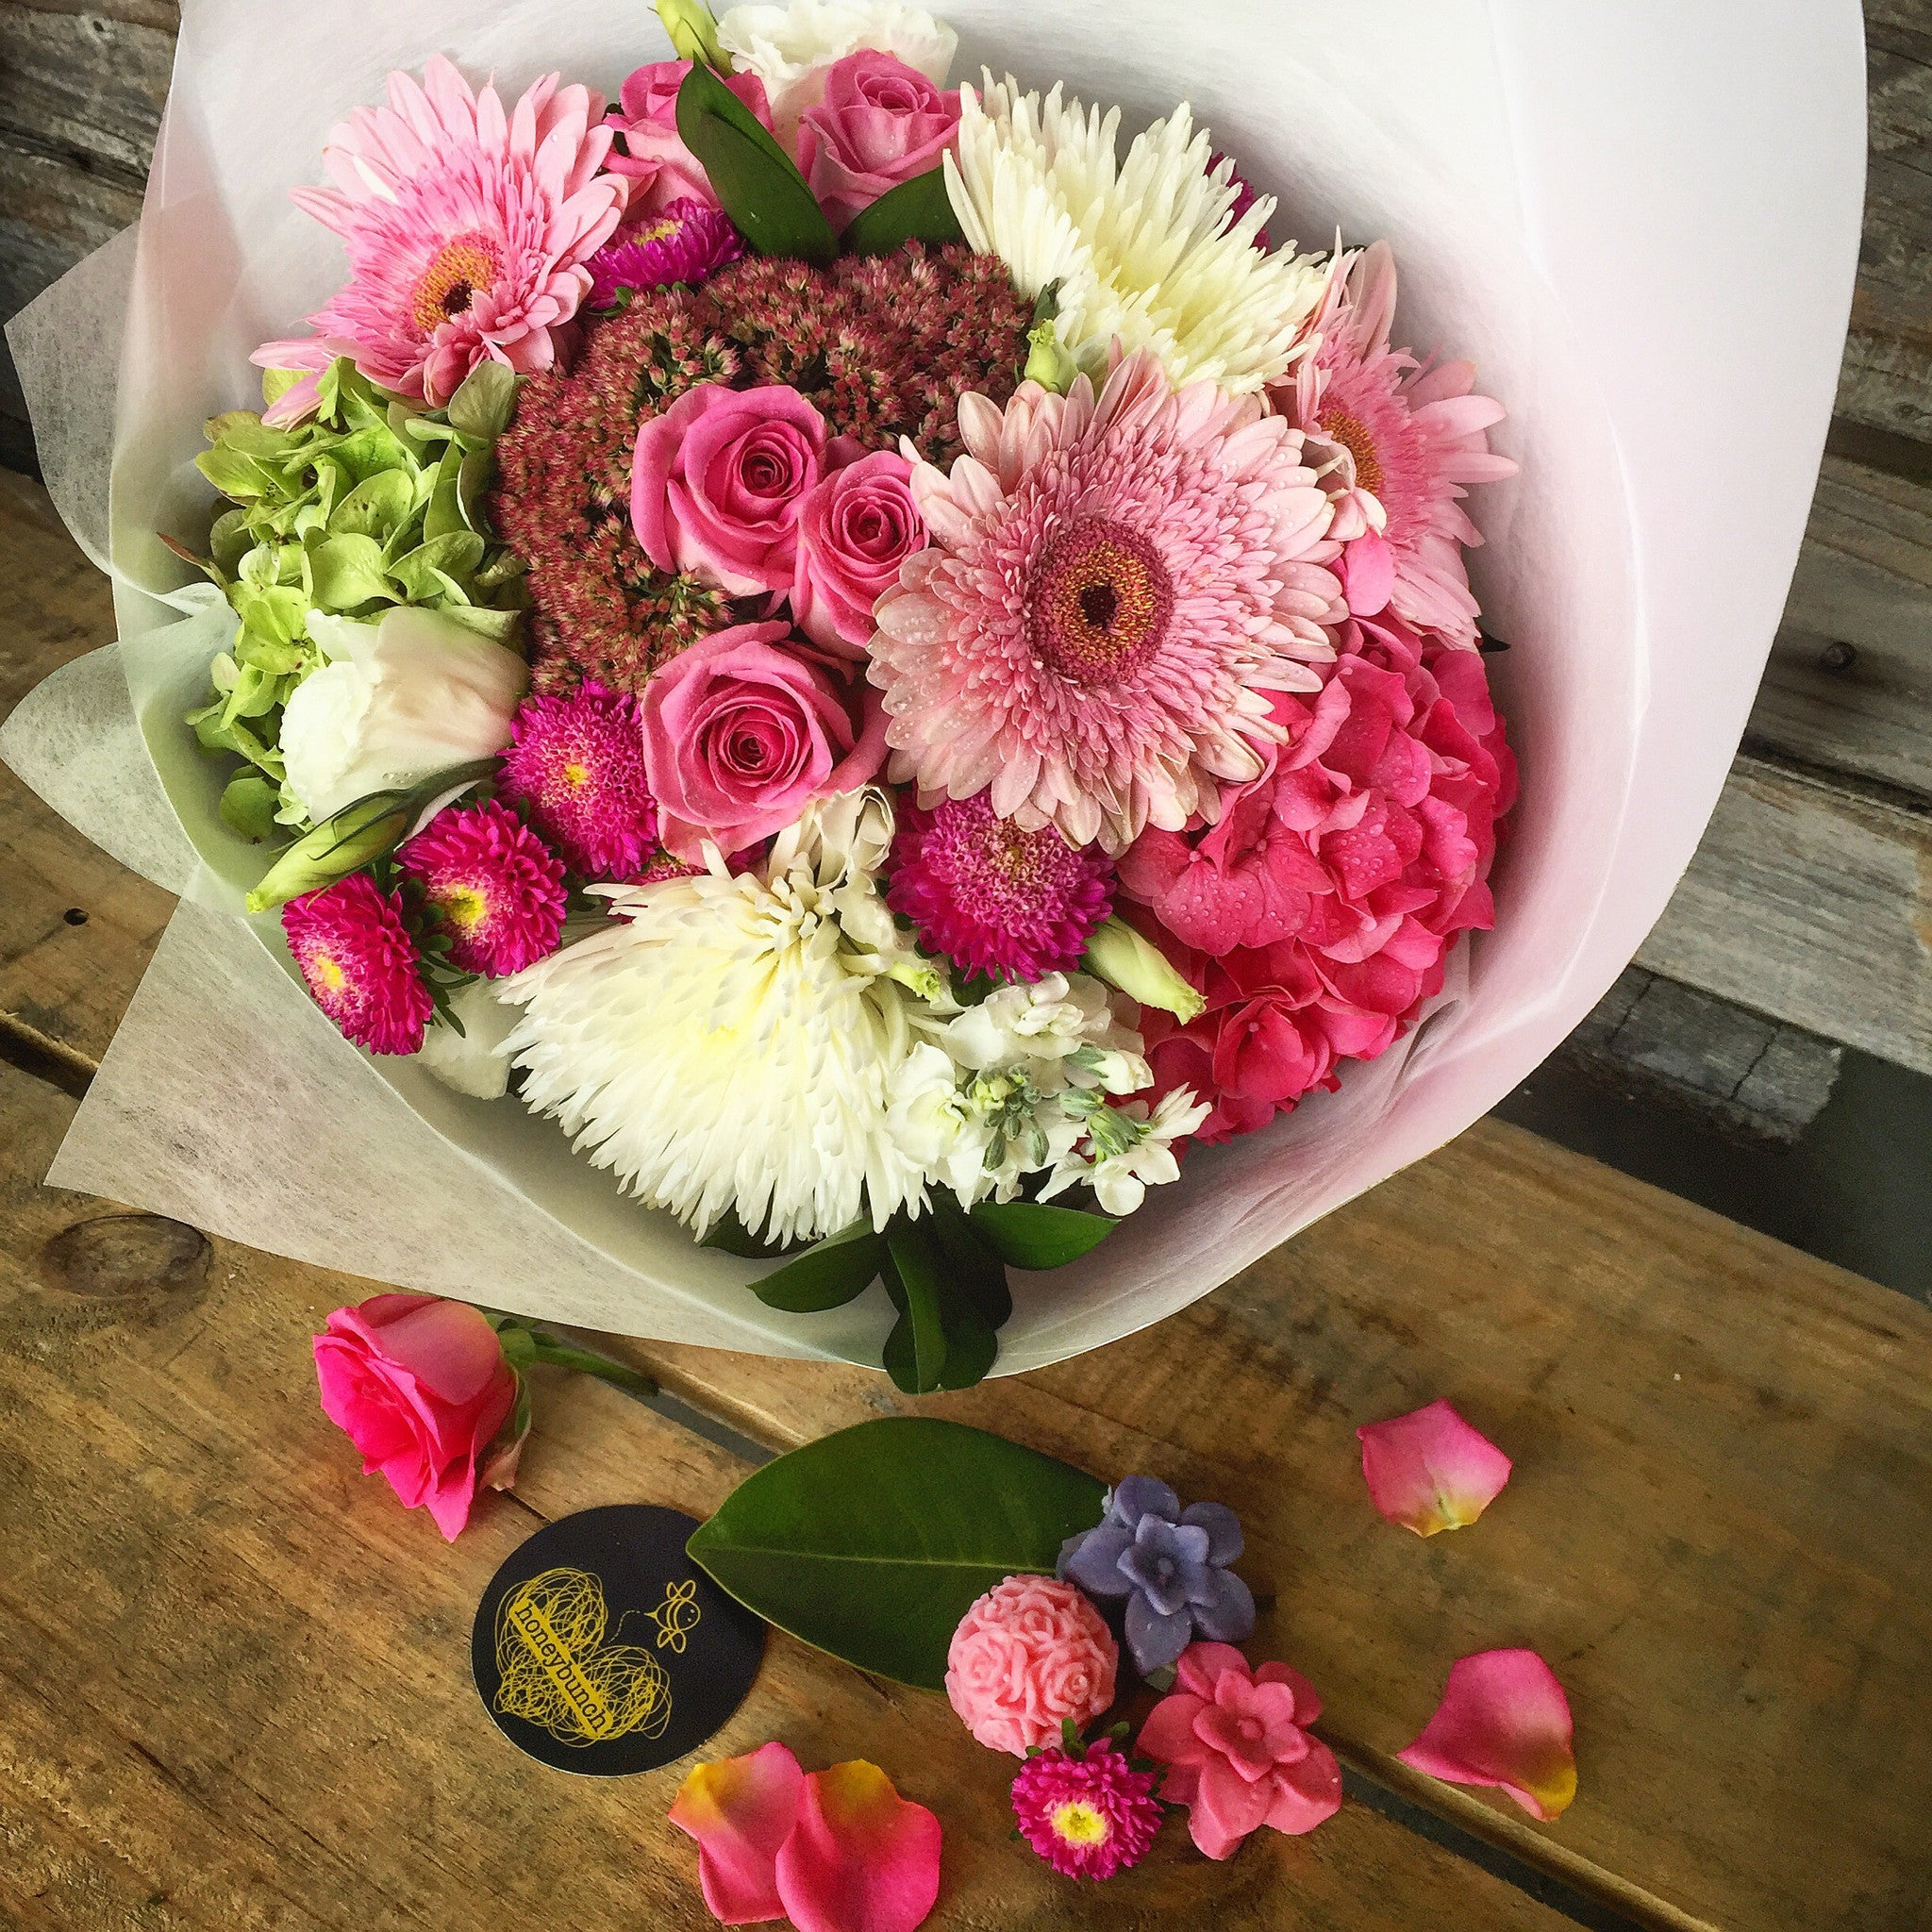 Picture perfect flower posy ......